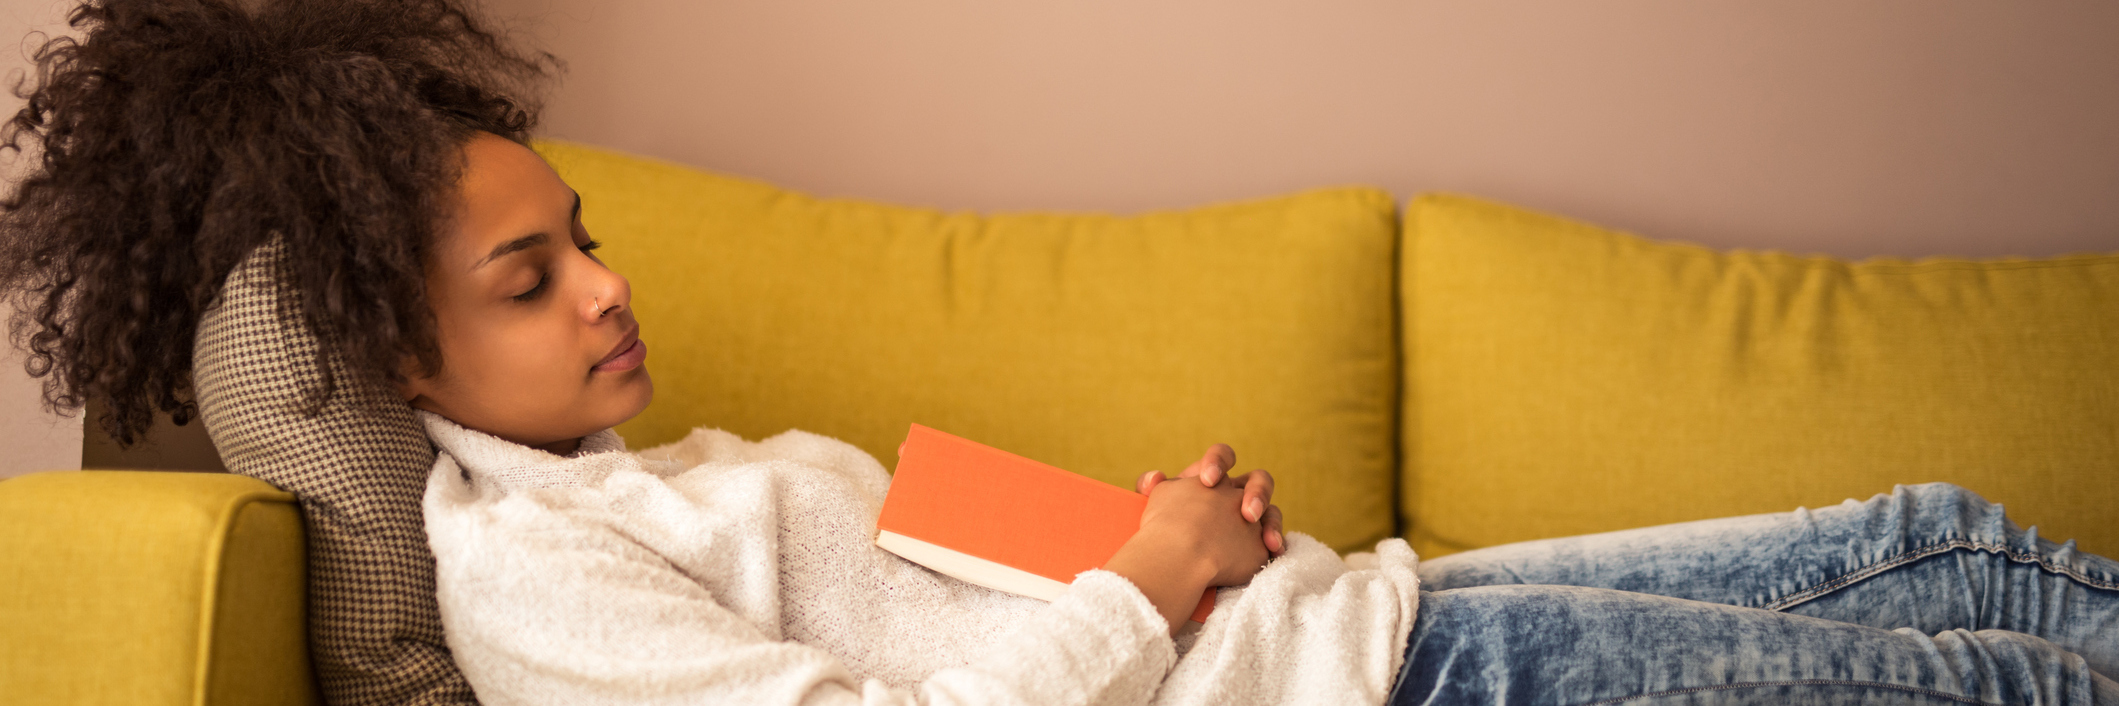 An young woman falling asleep on the couch with a book in hand.